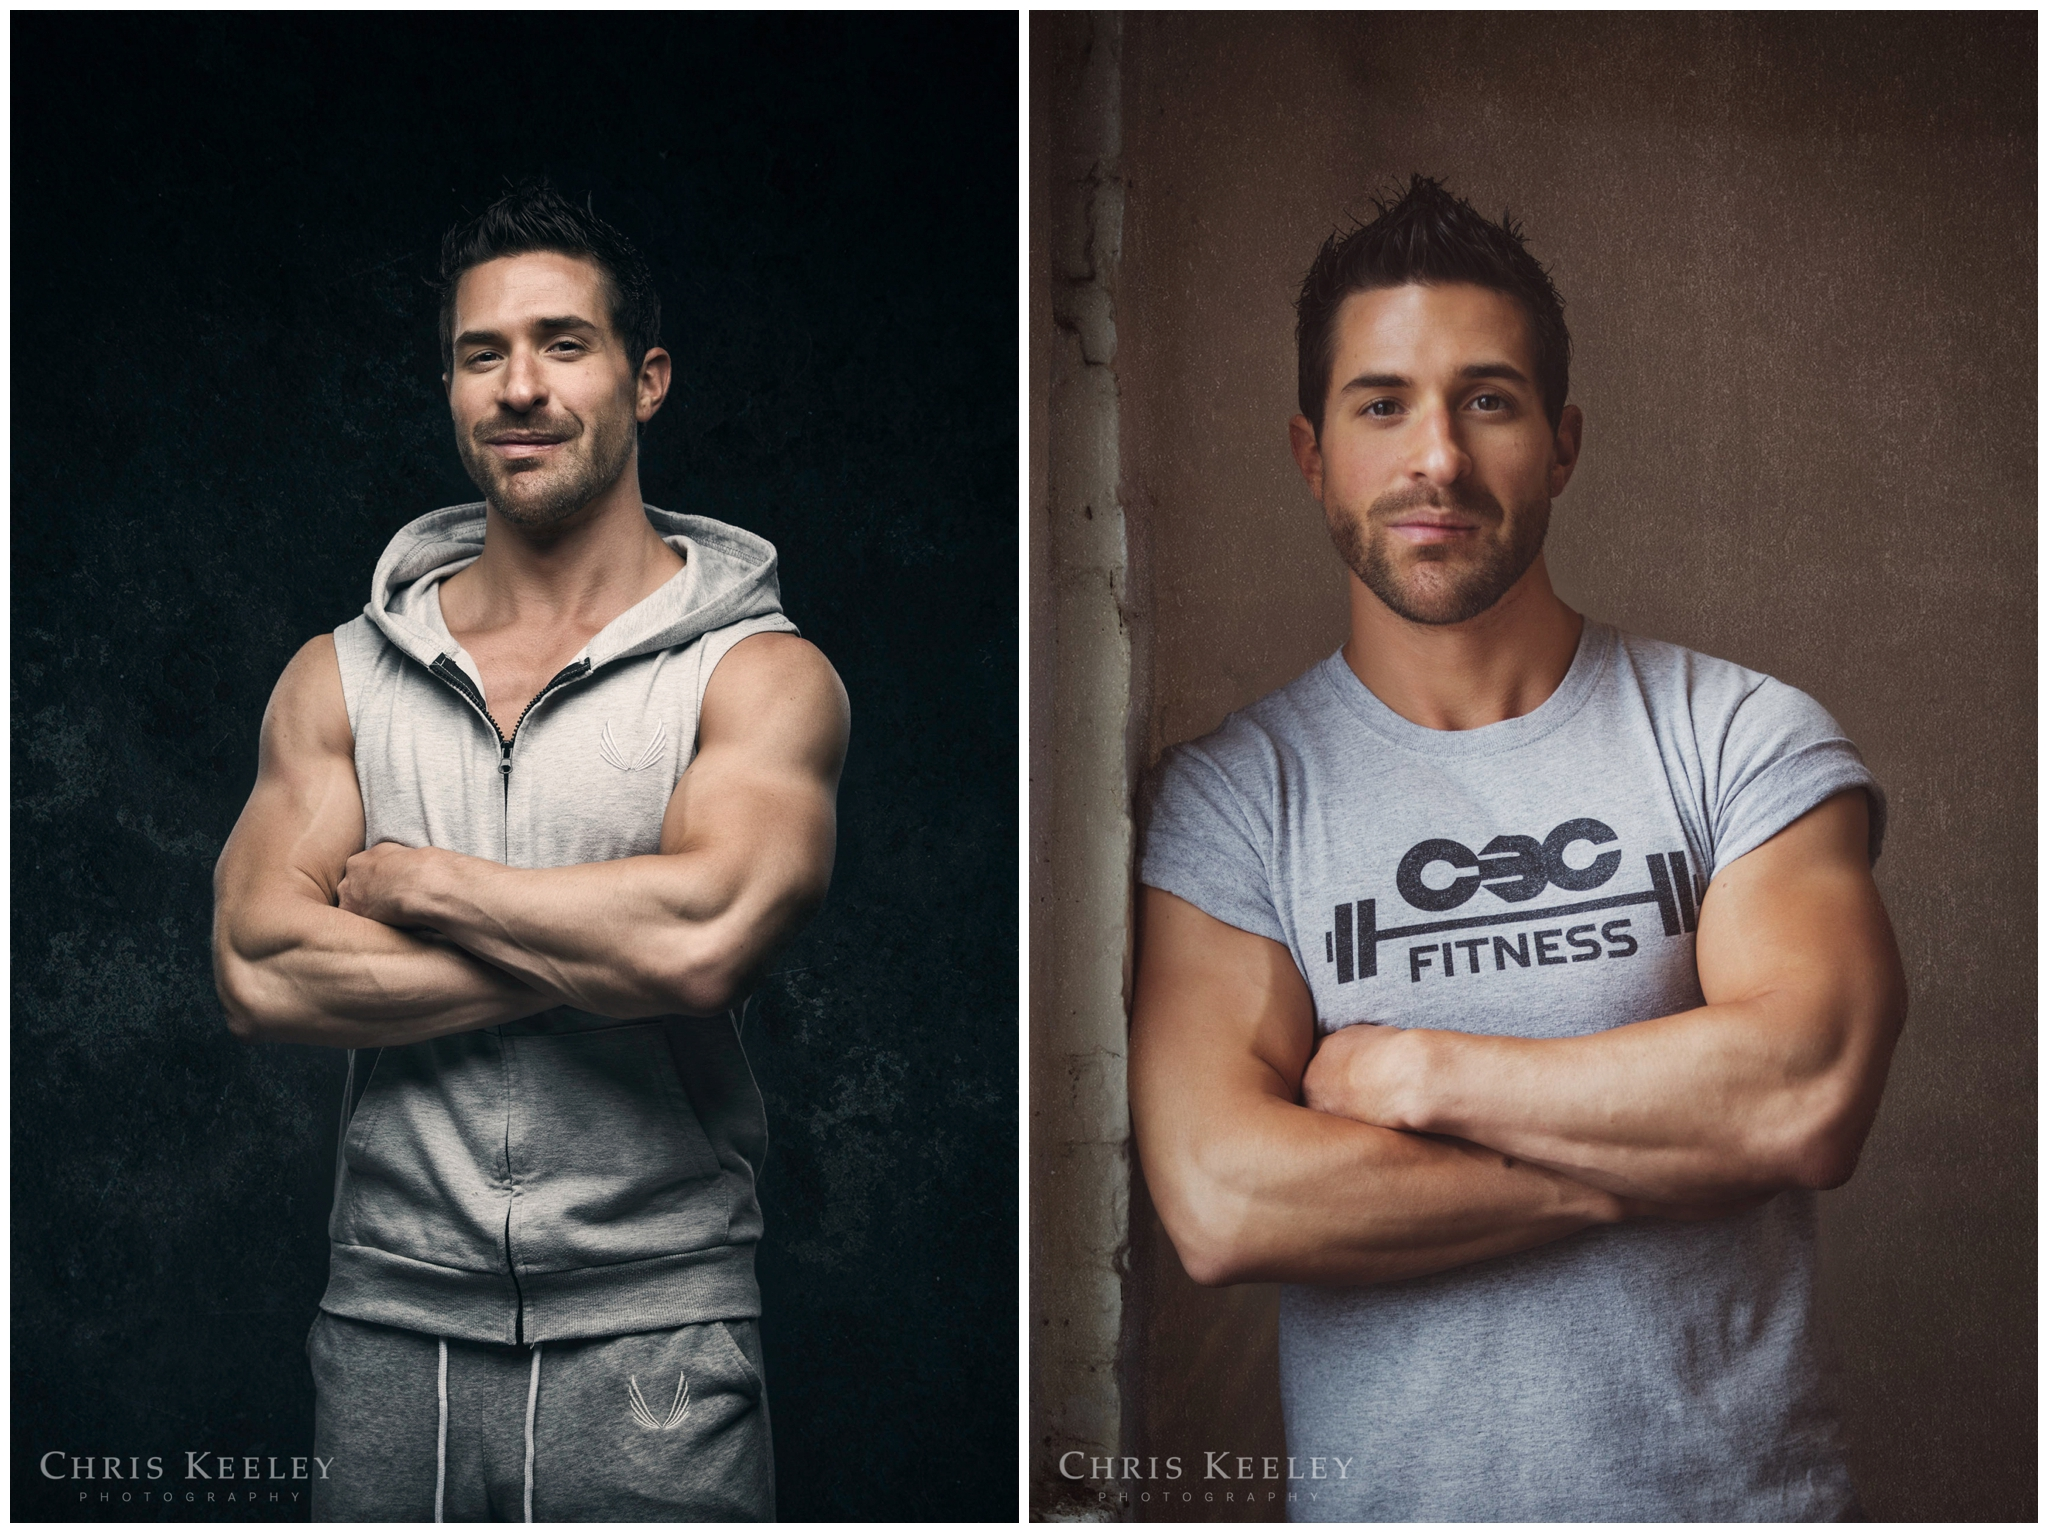 fitness-photos-personal-trainer-maine-new-hampshire-chris-keeley-photography-03.jpg